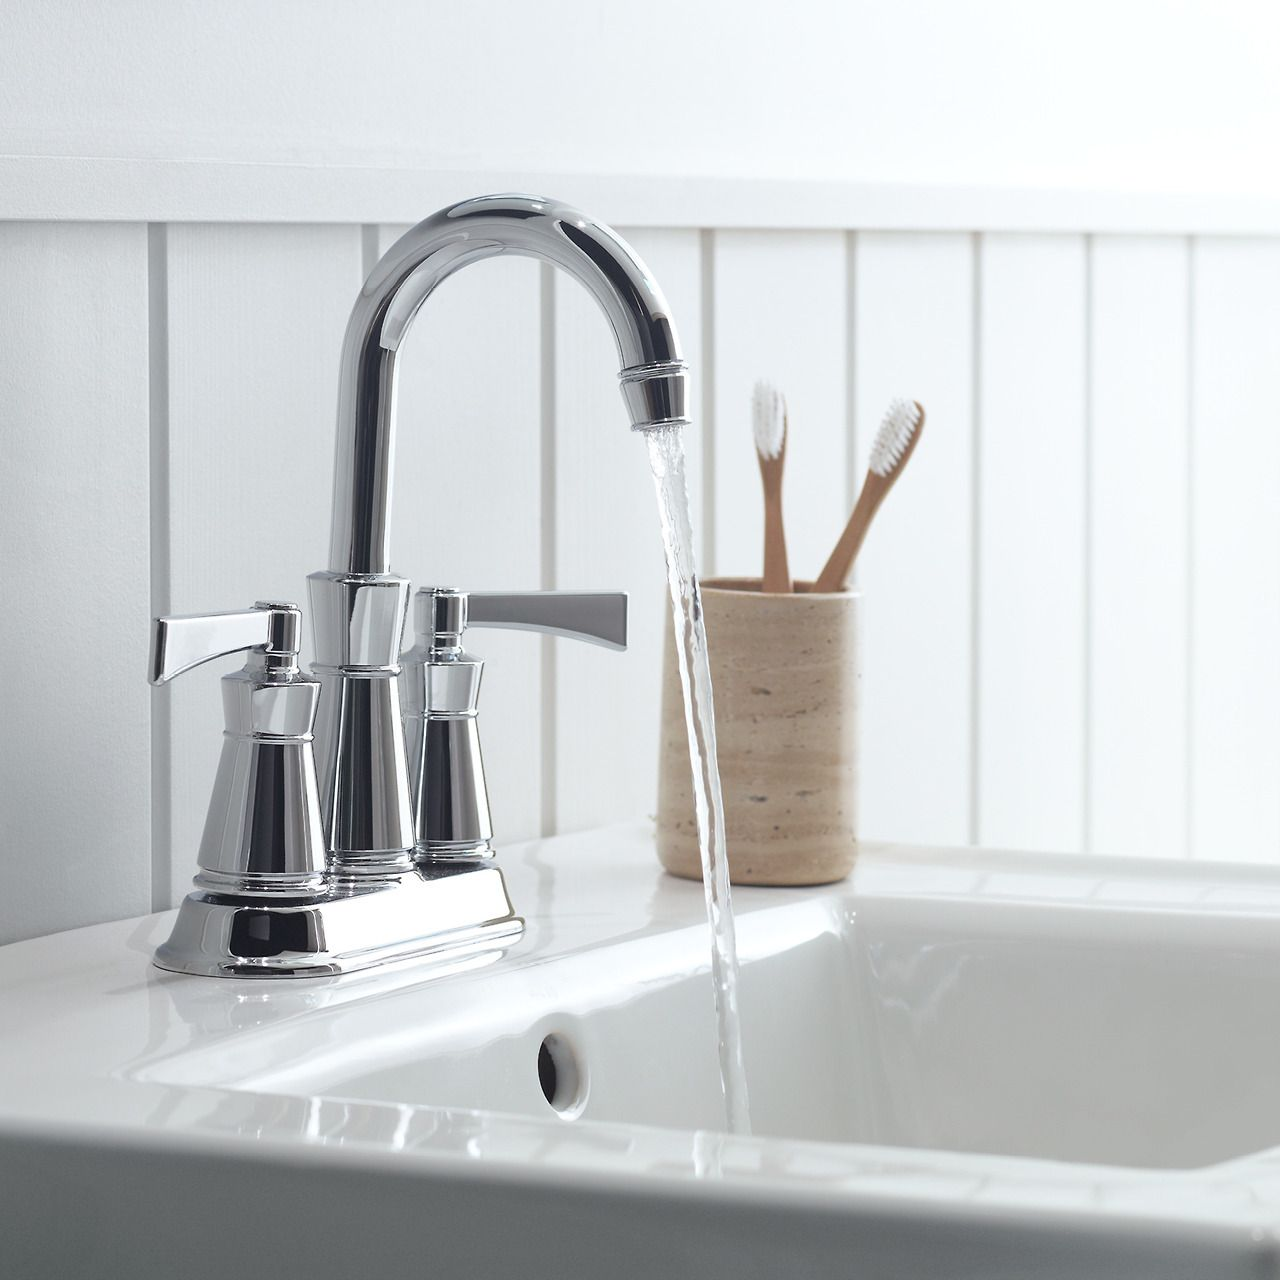 Craftsman Style Bathroom Faucets: The Universal Style Of The Archer Collection Blends Subtle